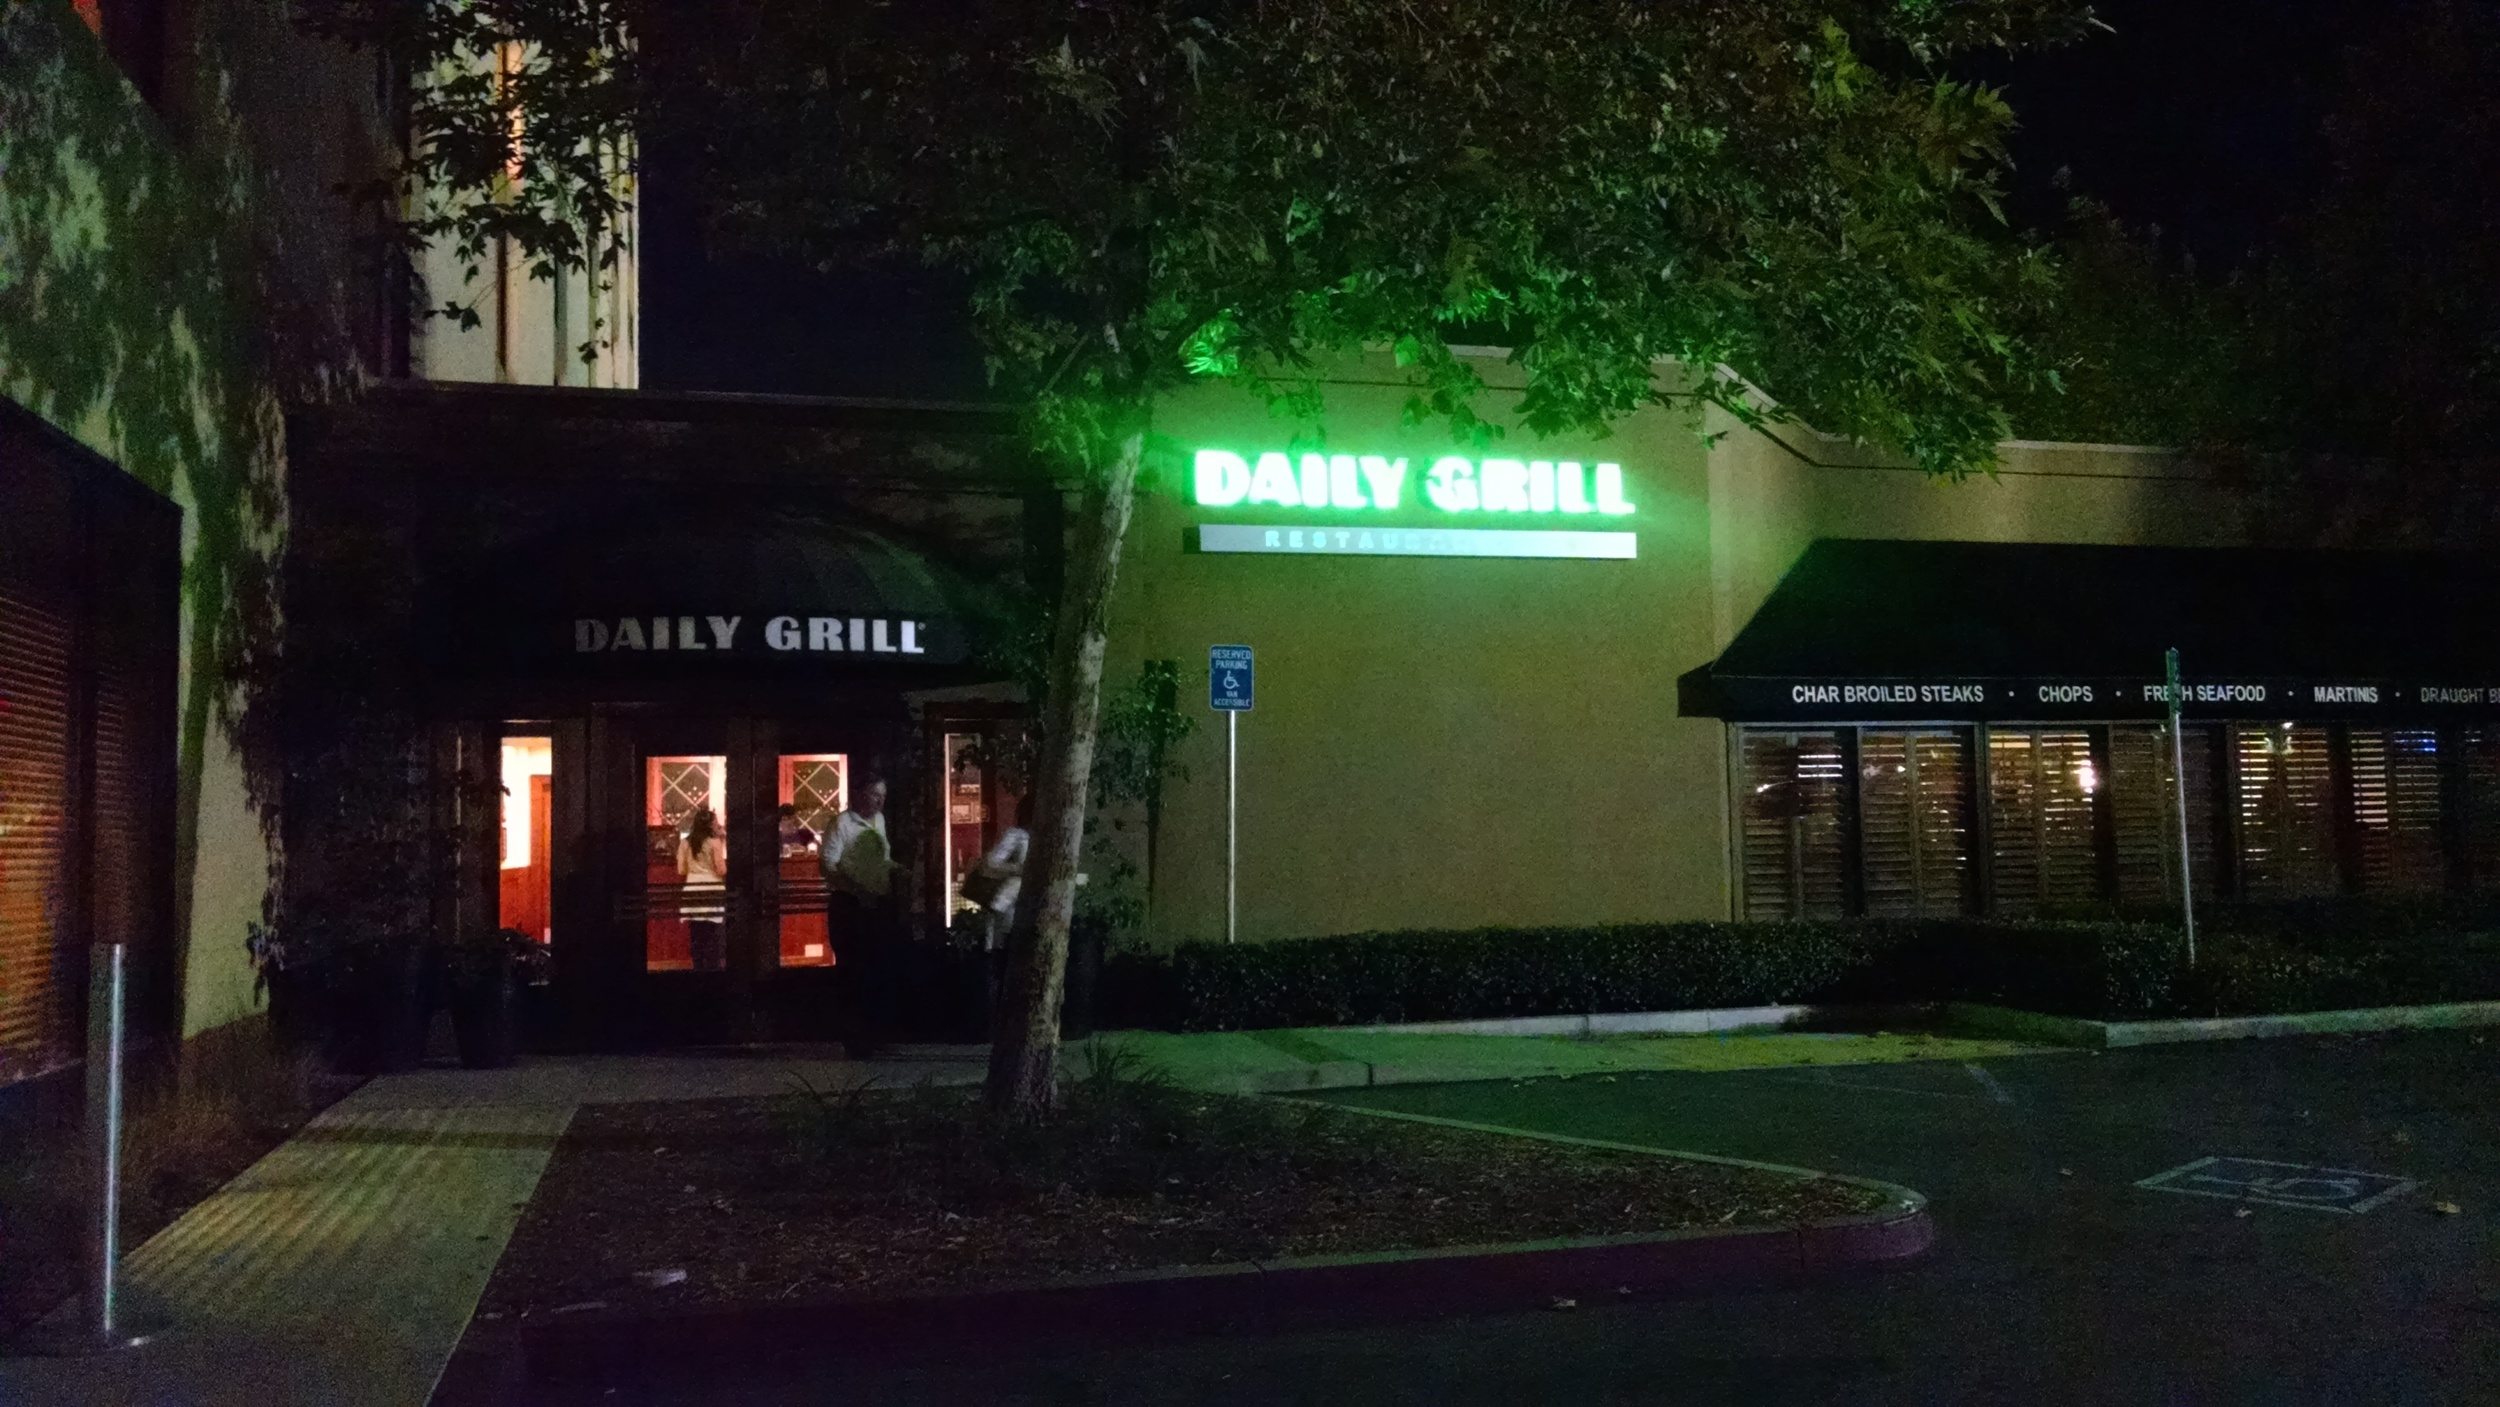 Saying goodbye to The Daily Grill, Monsterpalooza moves to Pasadena in 2016